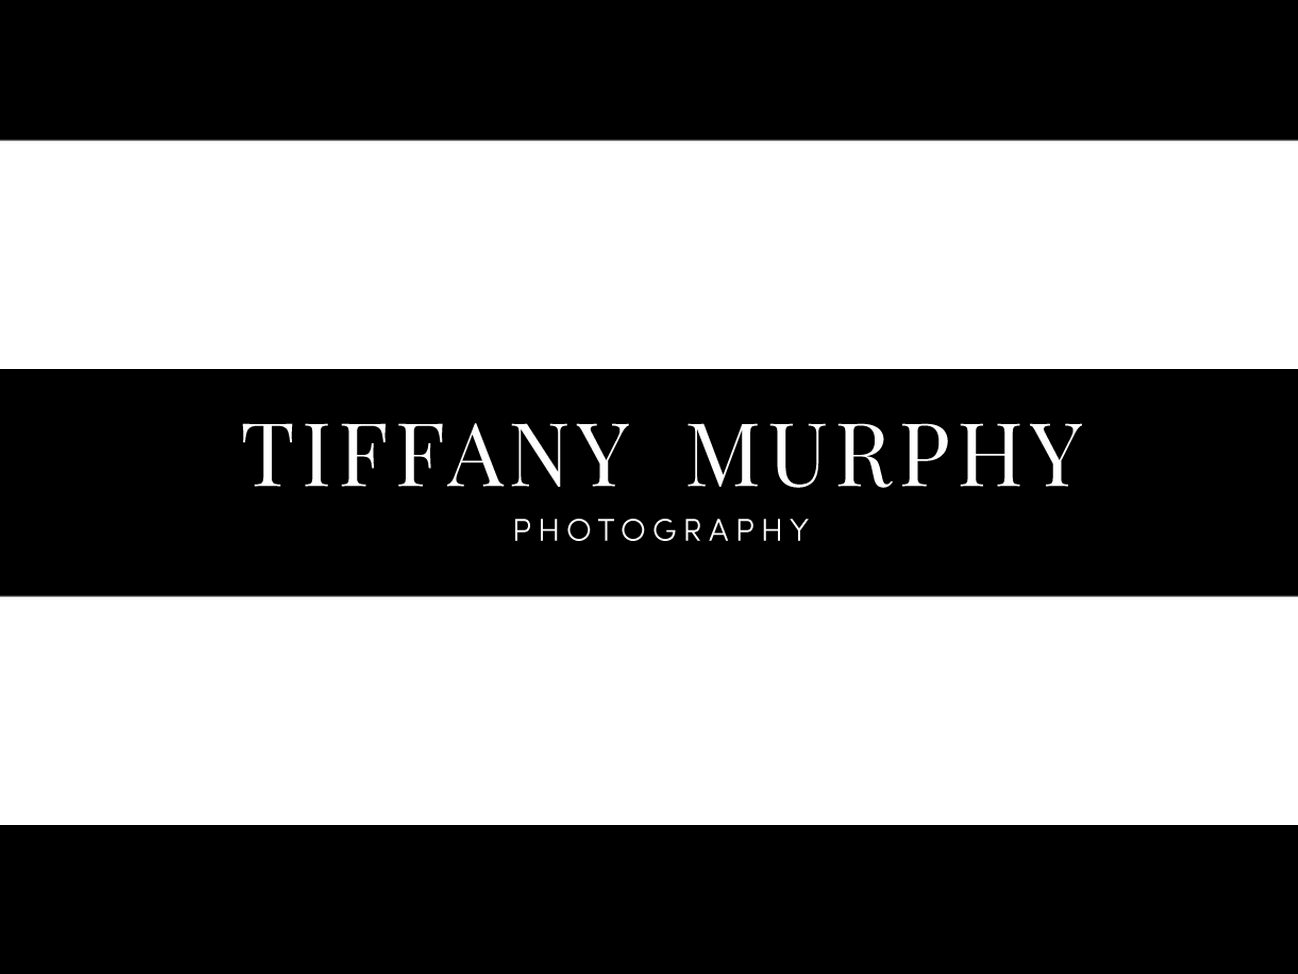 modern-pretty-logo-design-tiffany-murphy-photography